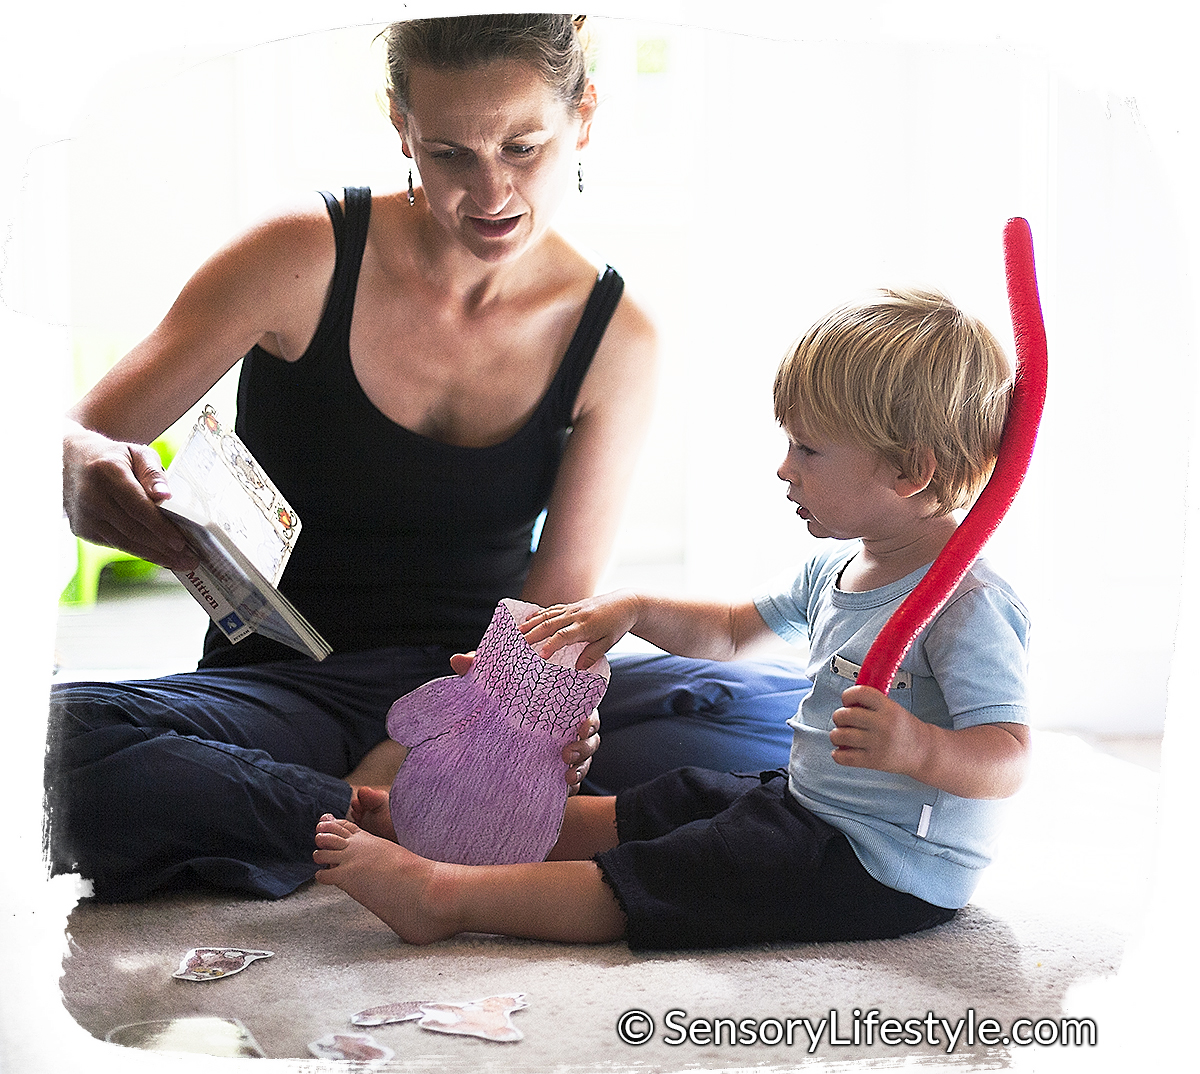 Toddler Activities : Month 16: Top 10 Sensory Activities for your 16 month toddler